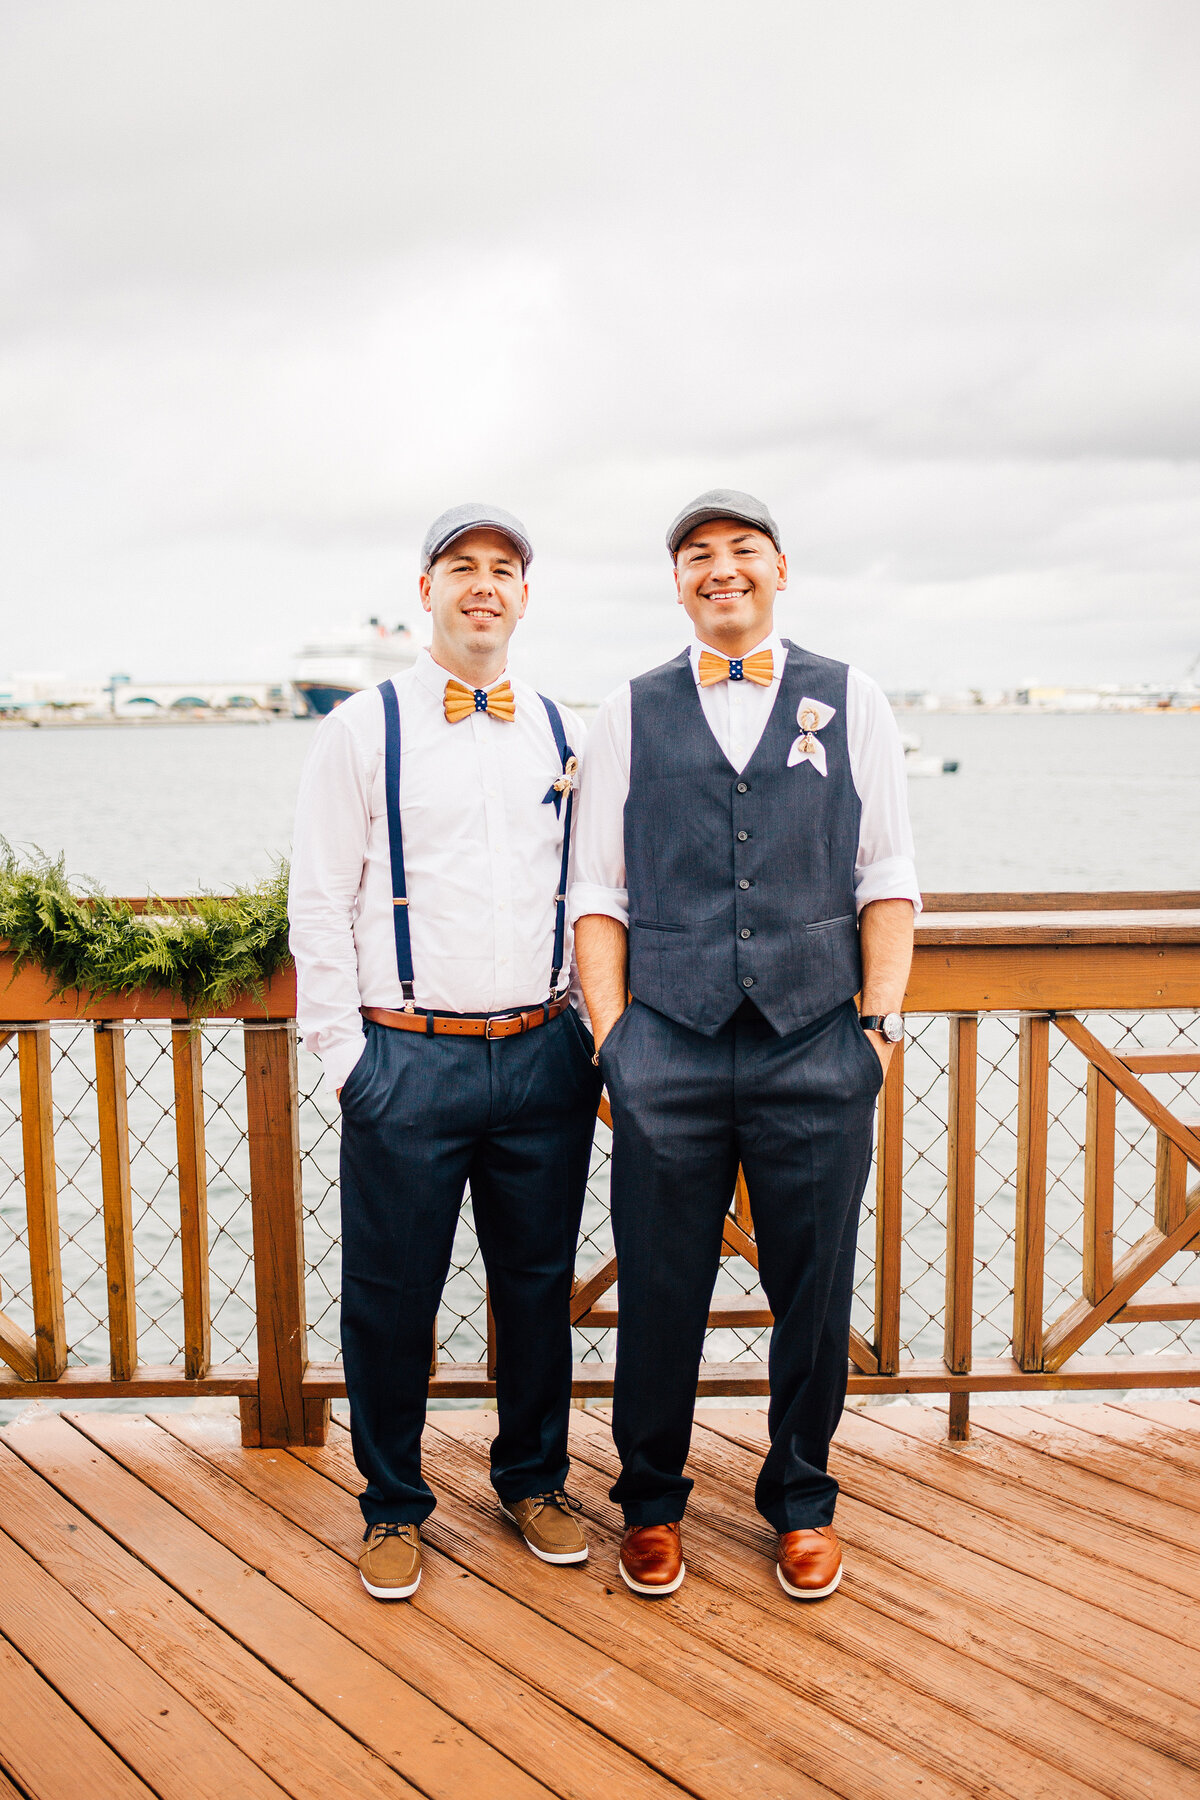 Kimberly_Hoyle_Photography_Marrero_Millikens_Reef_Wedding-62